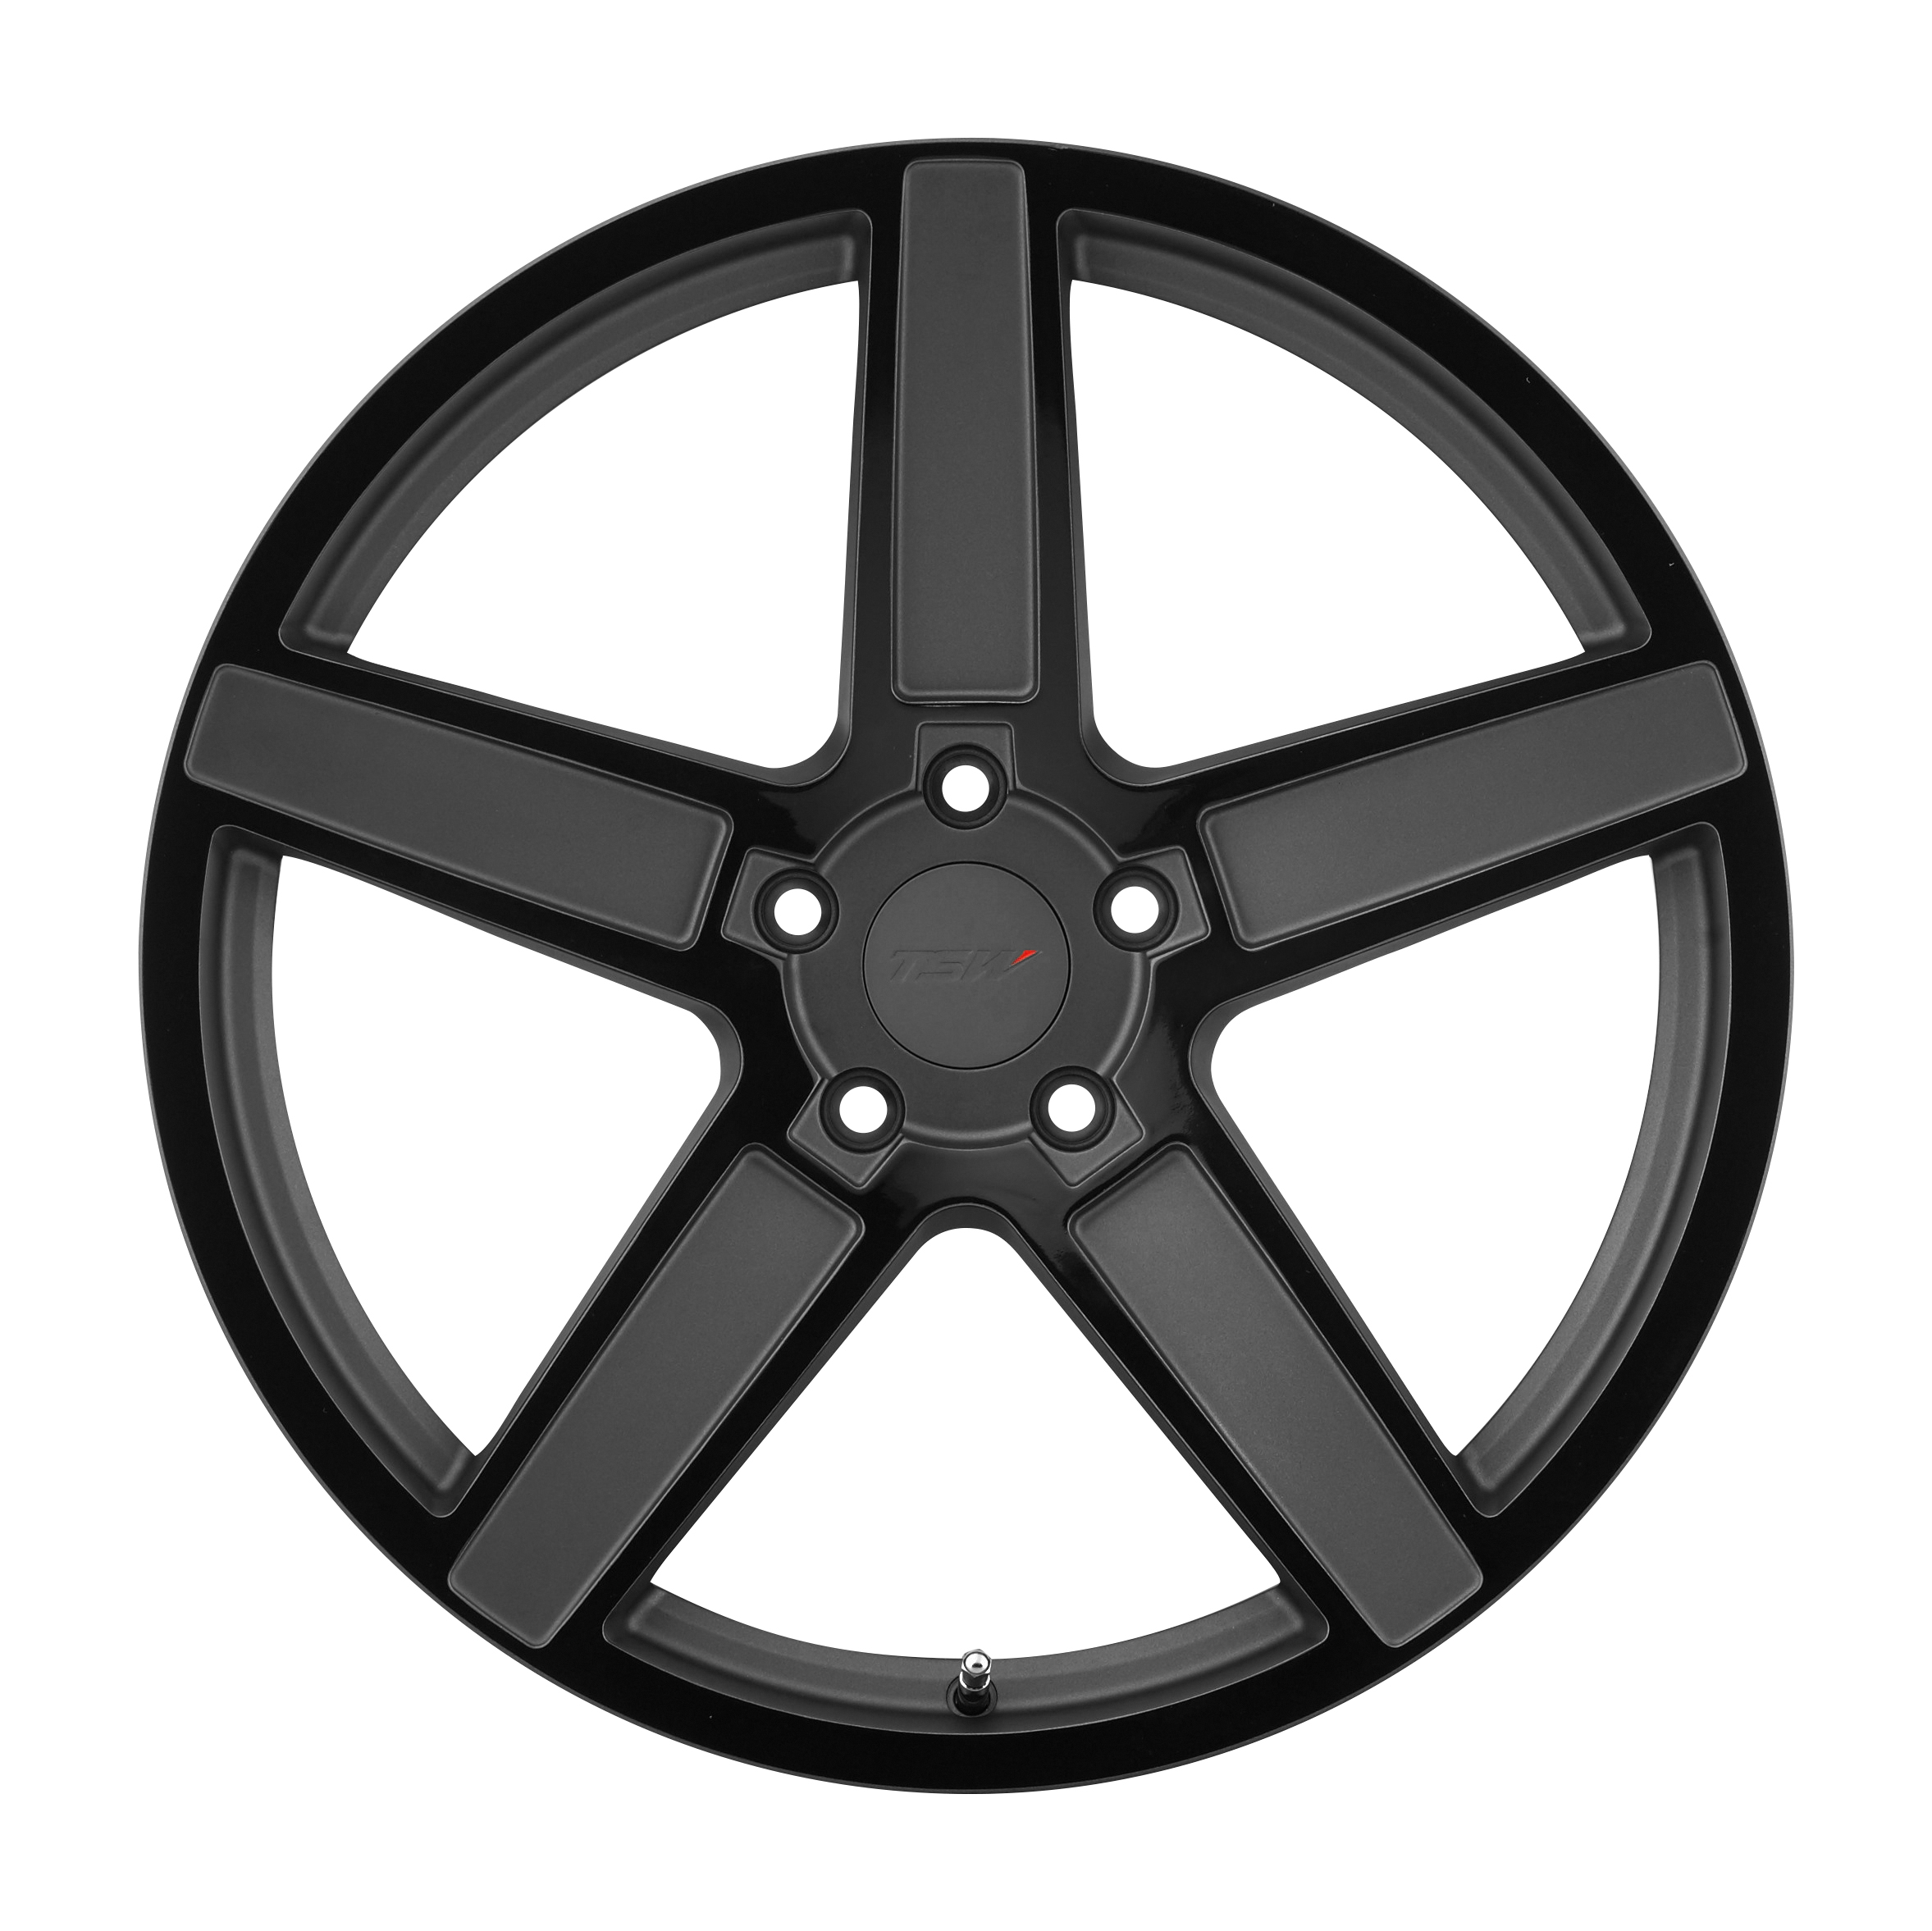 TSW Introduces the Ascent Wheel, a Distinctive New 5-spoke ...